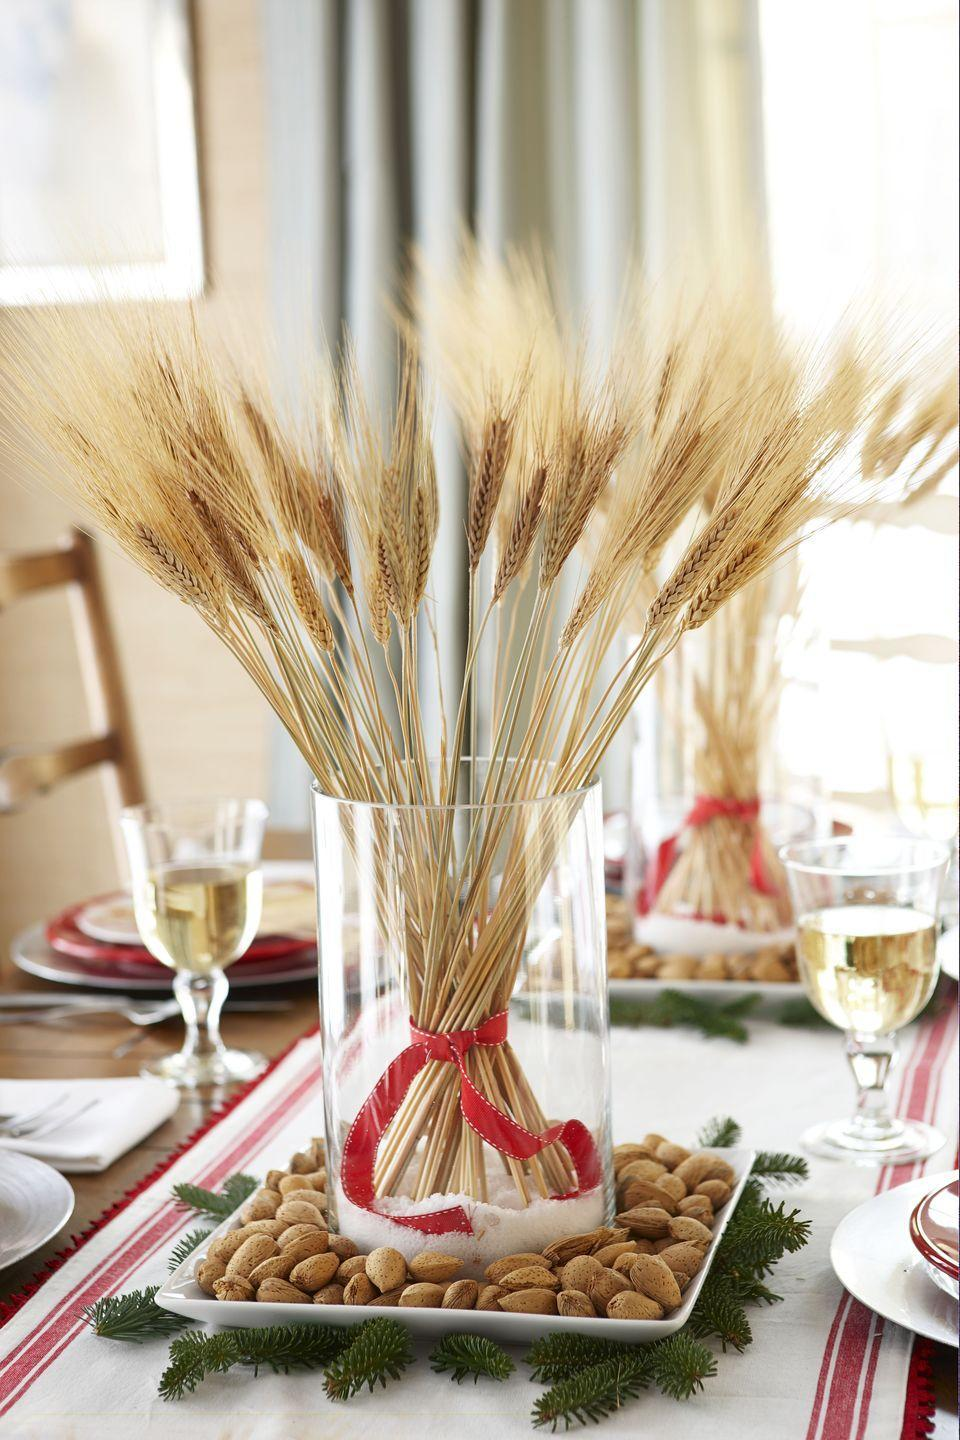 "<p>Store stalks of wheat upright in cylinder vases by layering the bottom with sugar or sand. For a rustic touch, place them on trays filled with almonds or walnuts. </p><p><a class=""link rapid-noclick-resp"" href=""https://www.amazon.com/Pomeat-Natural-Kitchen-Wedding-Decoration/dp/B07XDKKF1V/ref=sr_1_6?dchild=1&keywords=wheat+stalks&qid=1595447165&s=home-garden&sr=1-6&tag=syn-yahoo-20&ascsubtag=%5Bartid%7C10055.g.1681%5Bsrc%7Cyahoo-us"" rel=""nofollow noopener"" target=""_blank"" data-ylk=""slk:SHOP WHEAT"">SHOP WHEAT</a></p>"